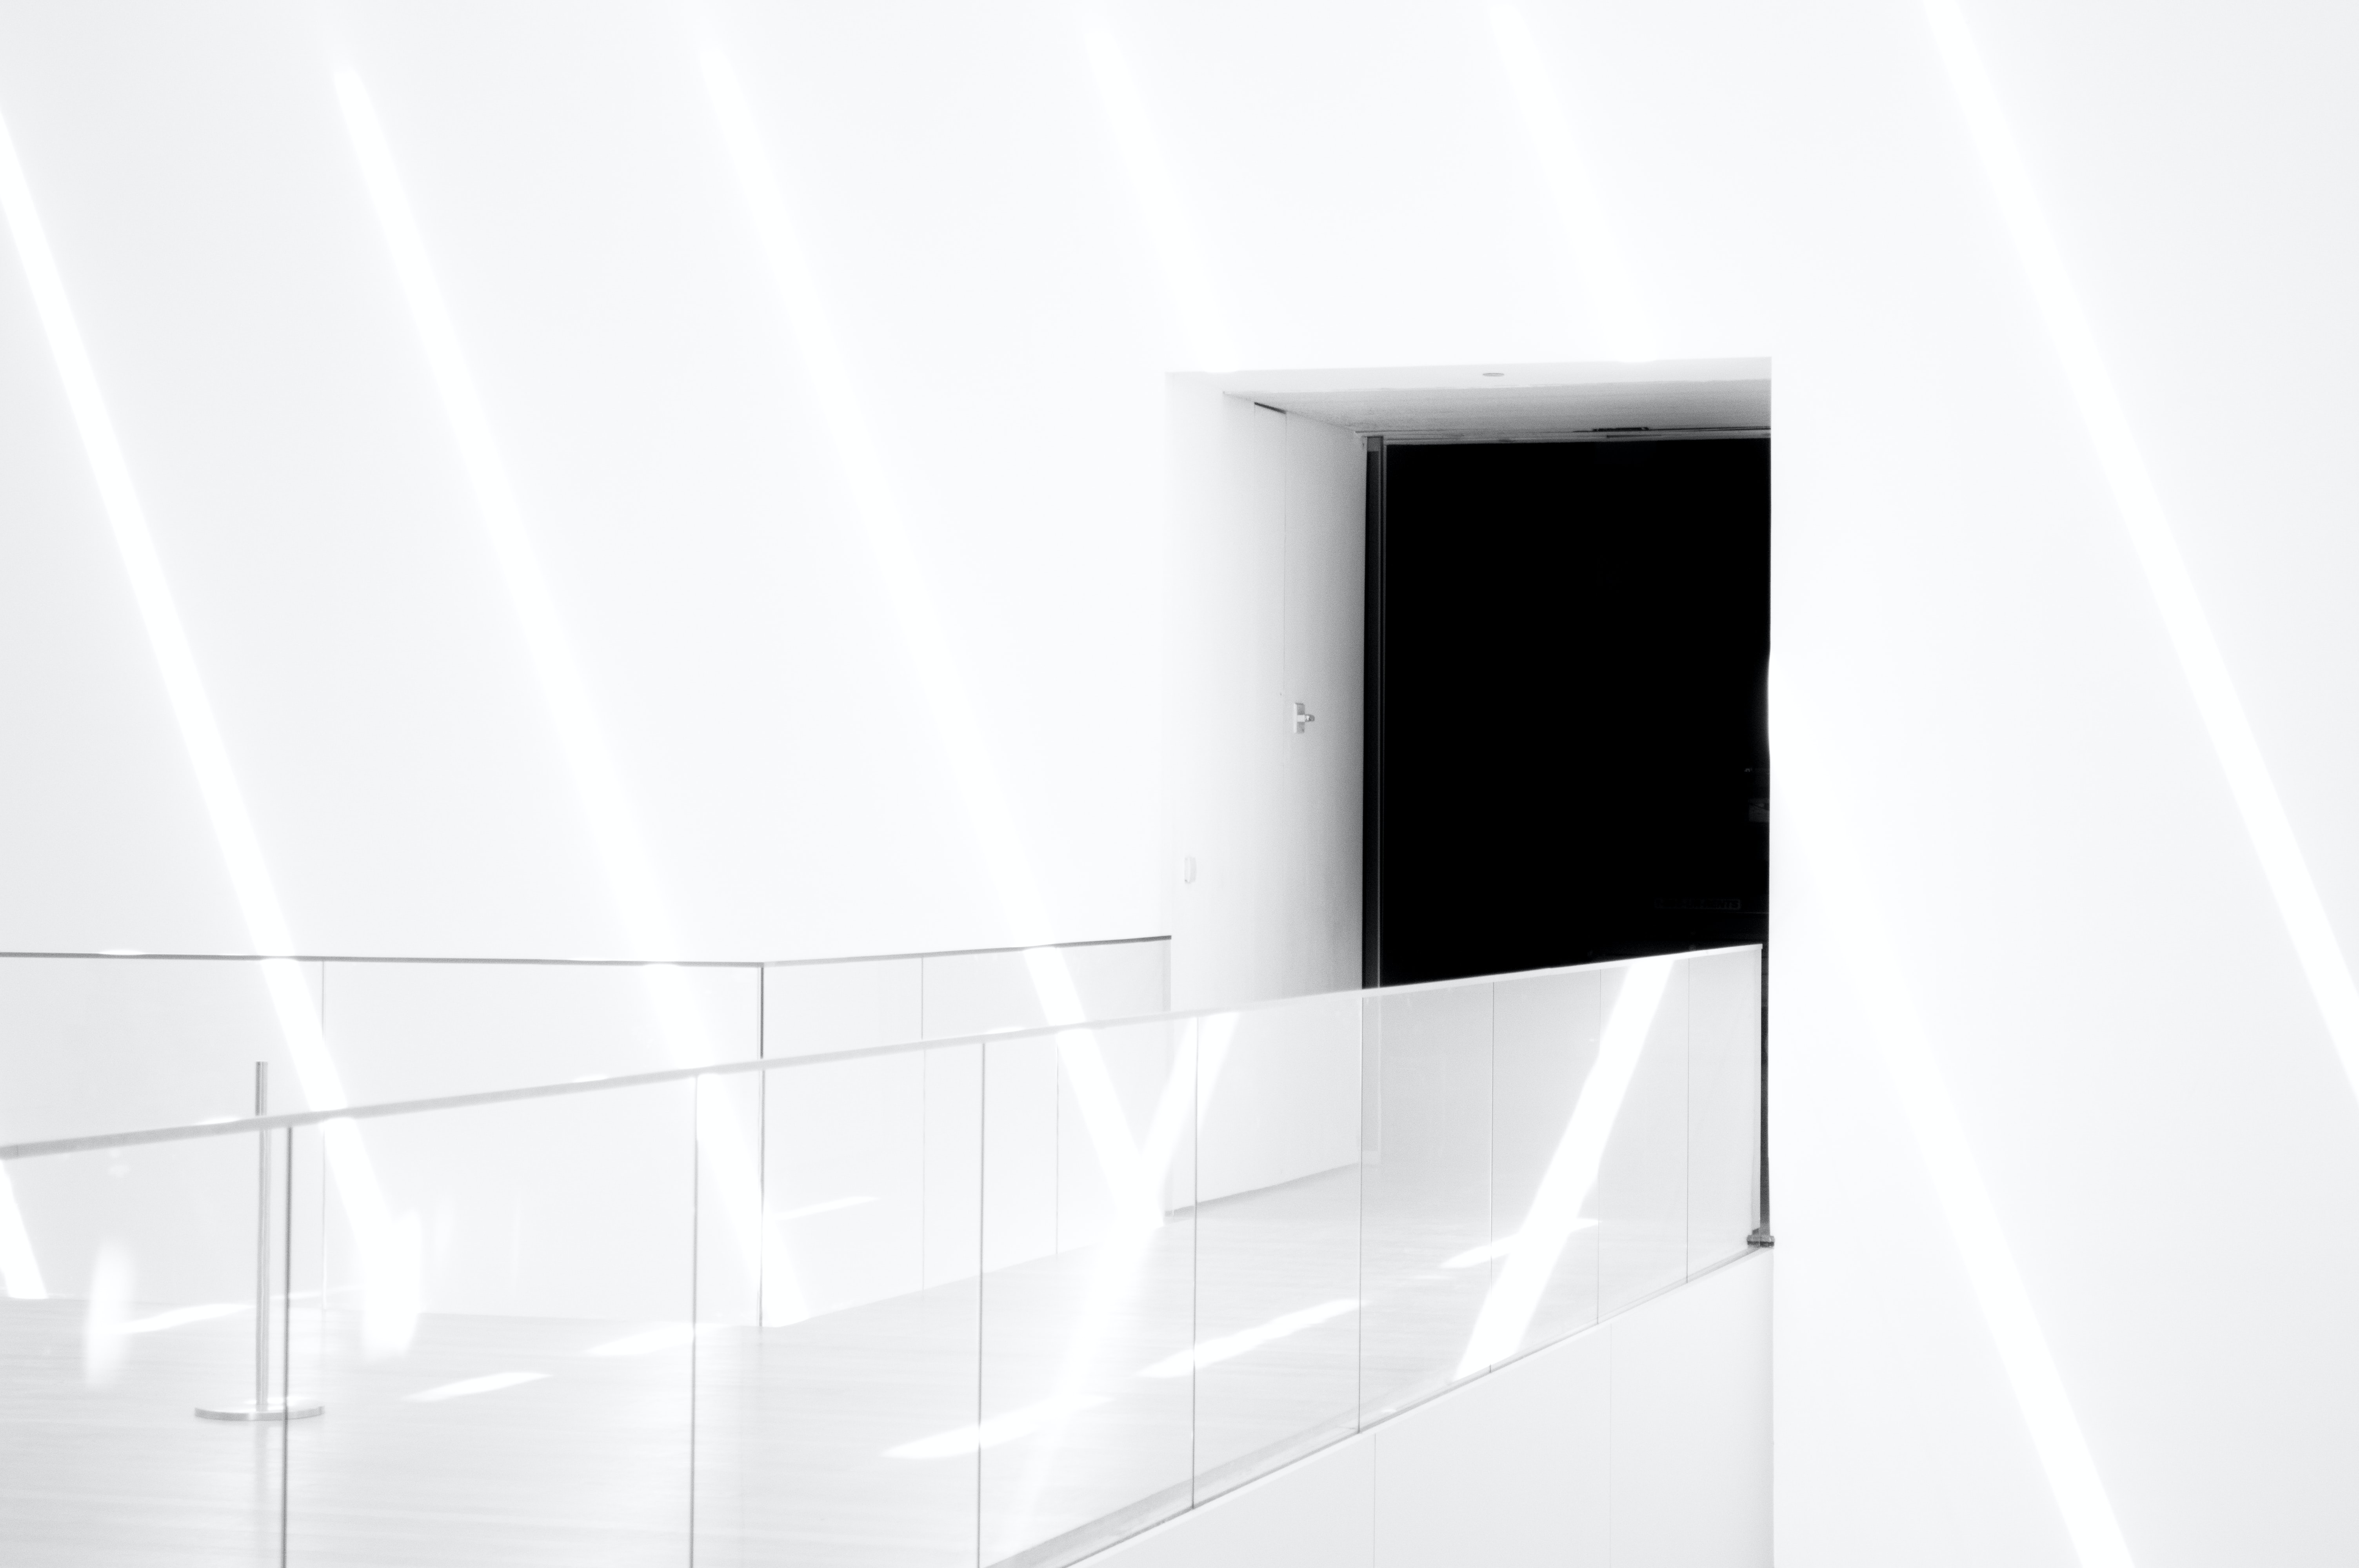 Modern architecture of white hallway passage and black door, The Museum of Modern Art